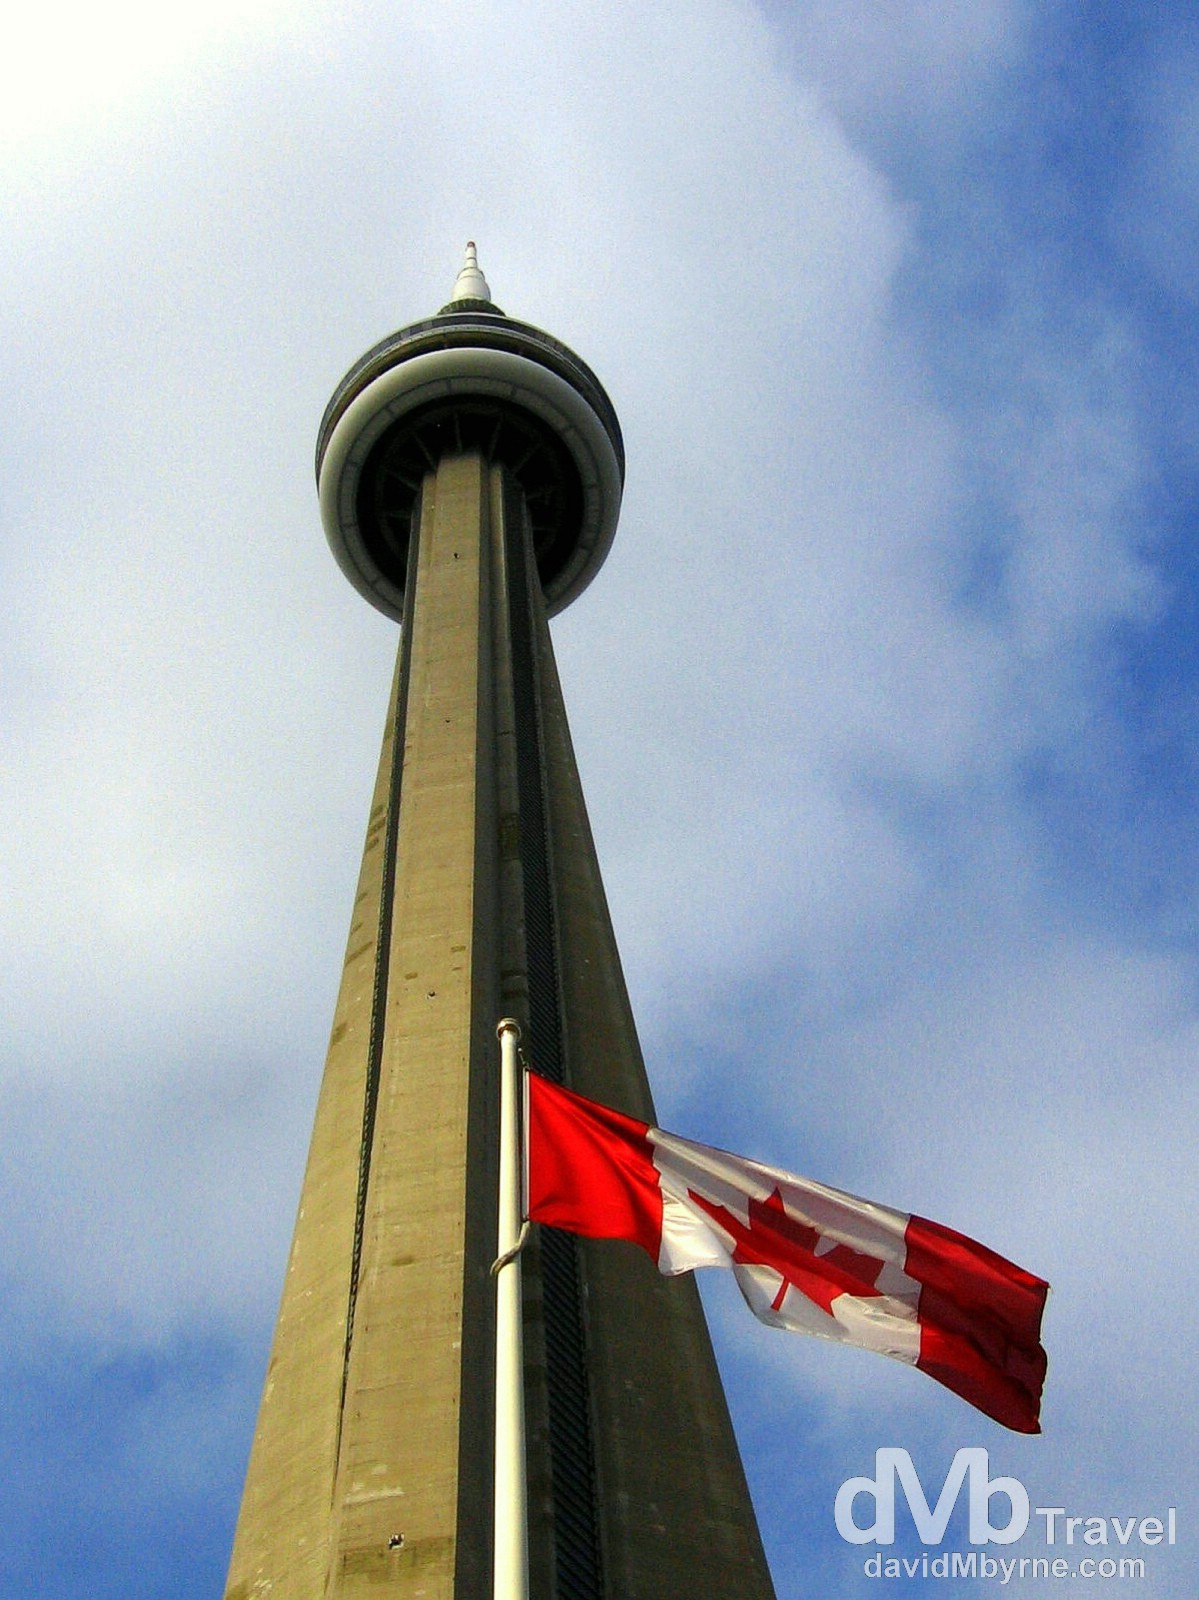 The CN Tower, Downtown, Toronto, Canada. December 5th 2005.